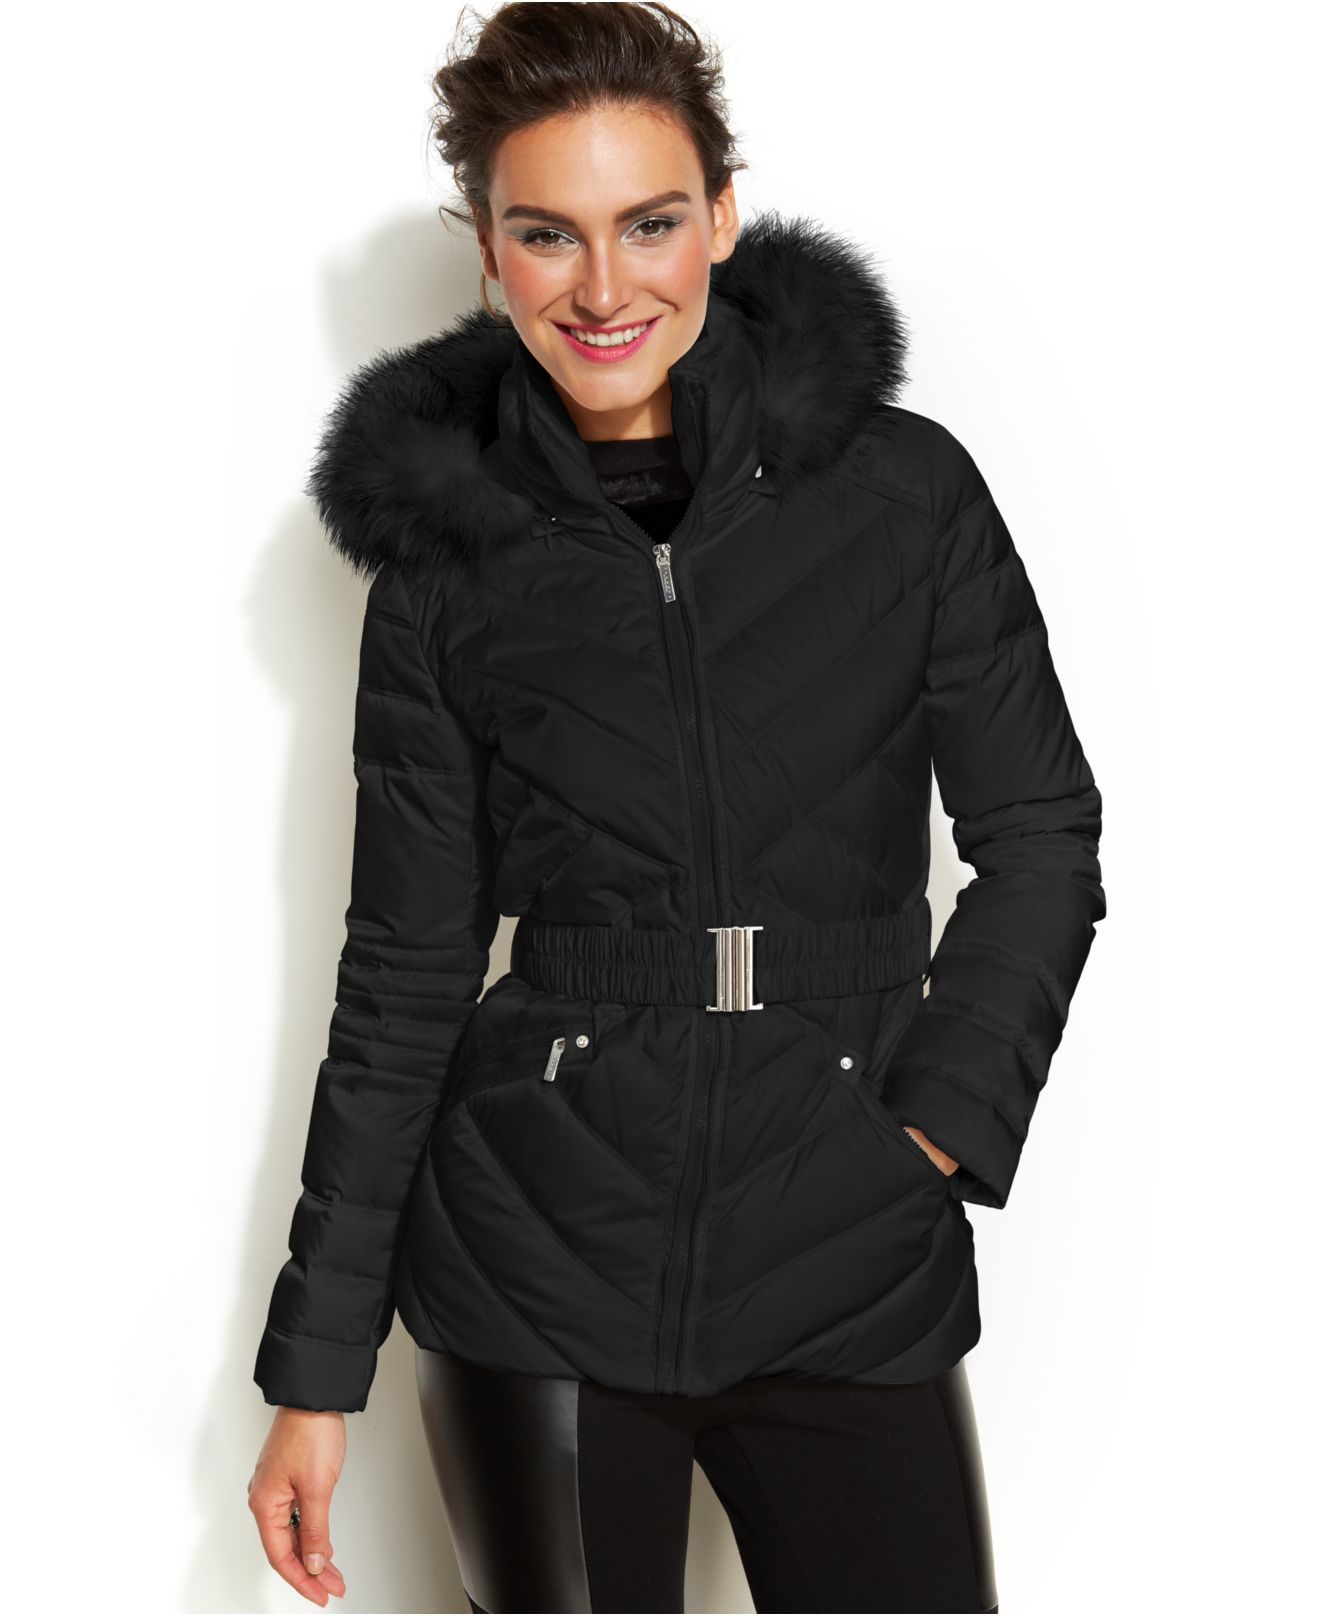 Womens black padded jacket with fur hood